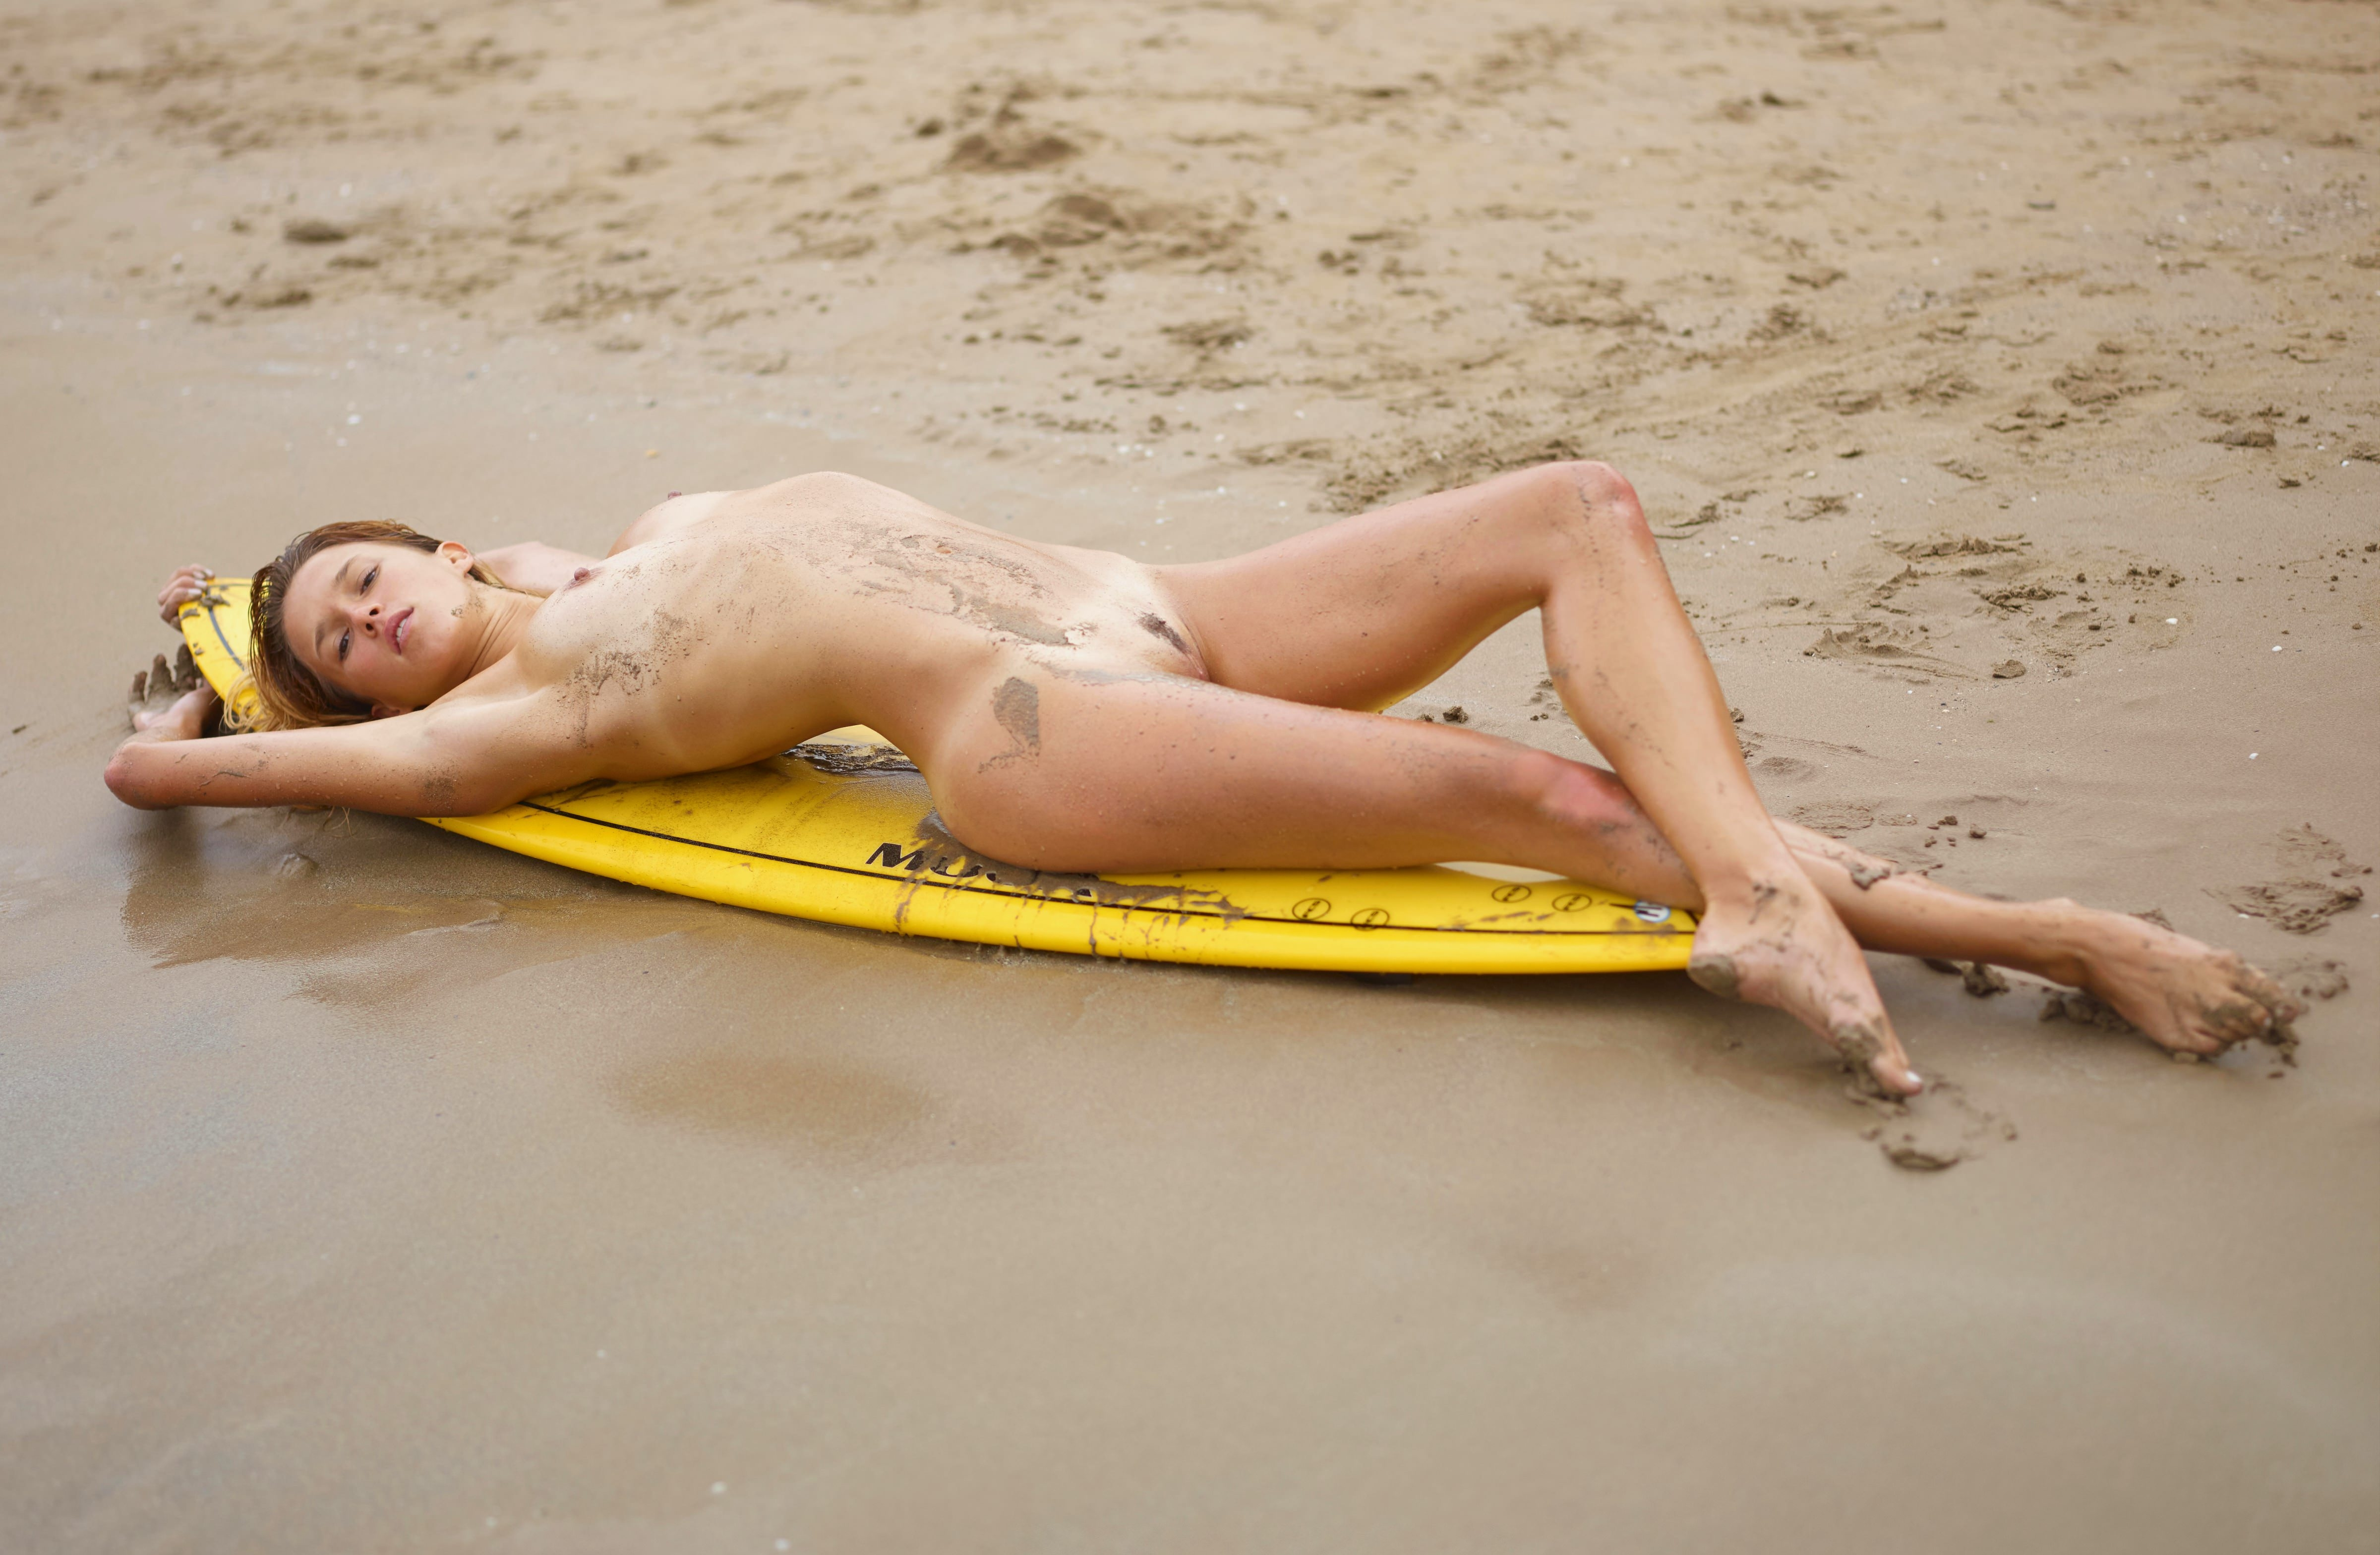 The best nude surfing photos of the web